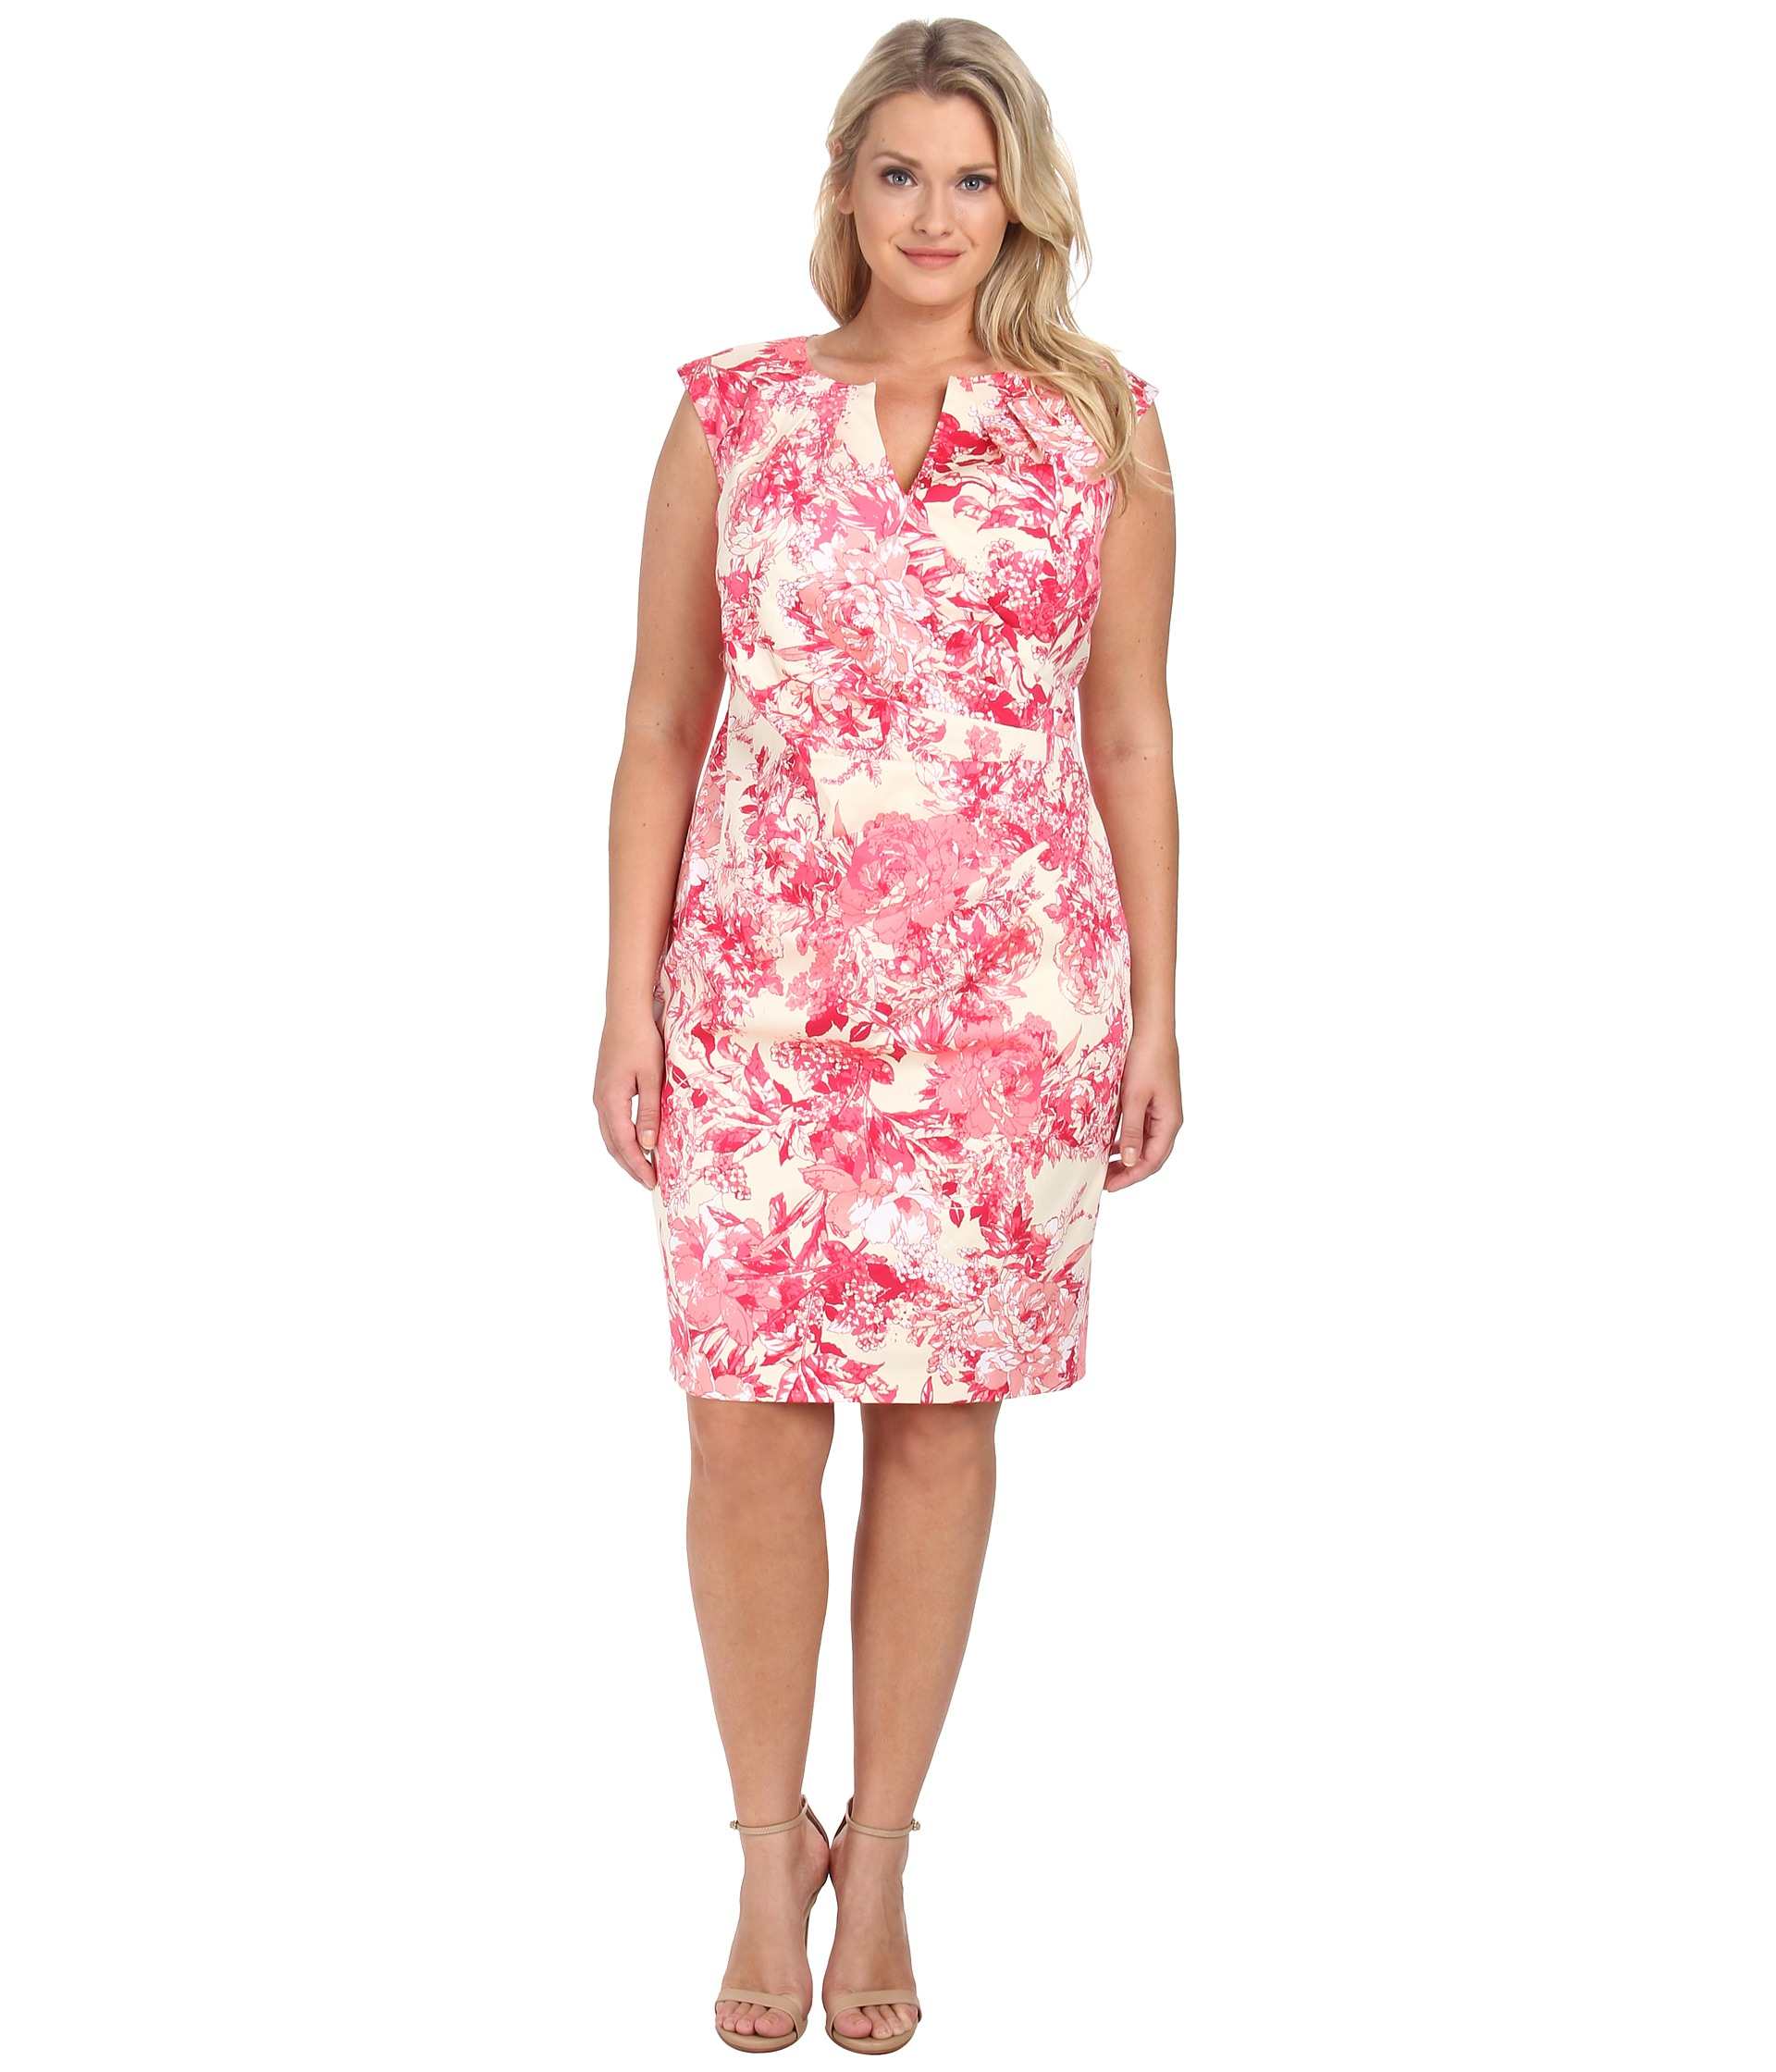 f36993c9167 Gallery. Previously sold at  Zappos · Women s Adrianna Papell Floral Dress  ...